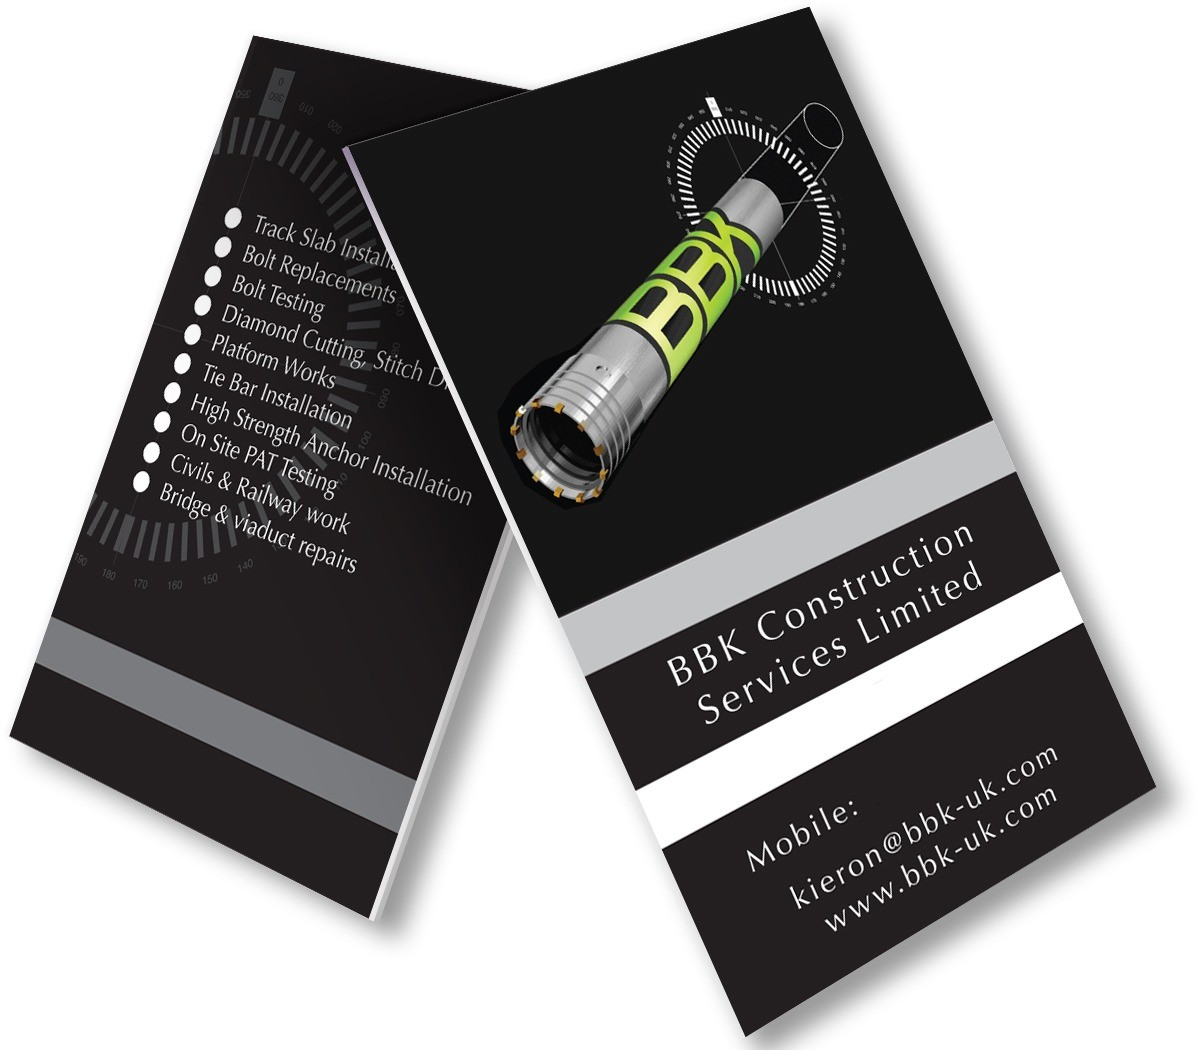 An illustration showing the front and back design of the BBK Construction Services business cards.